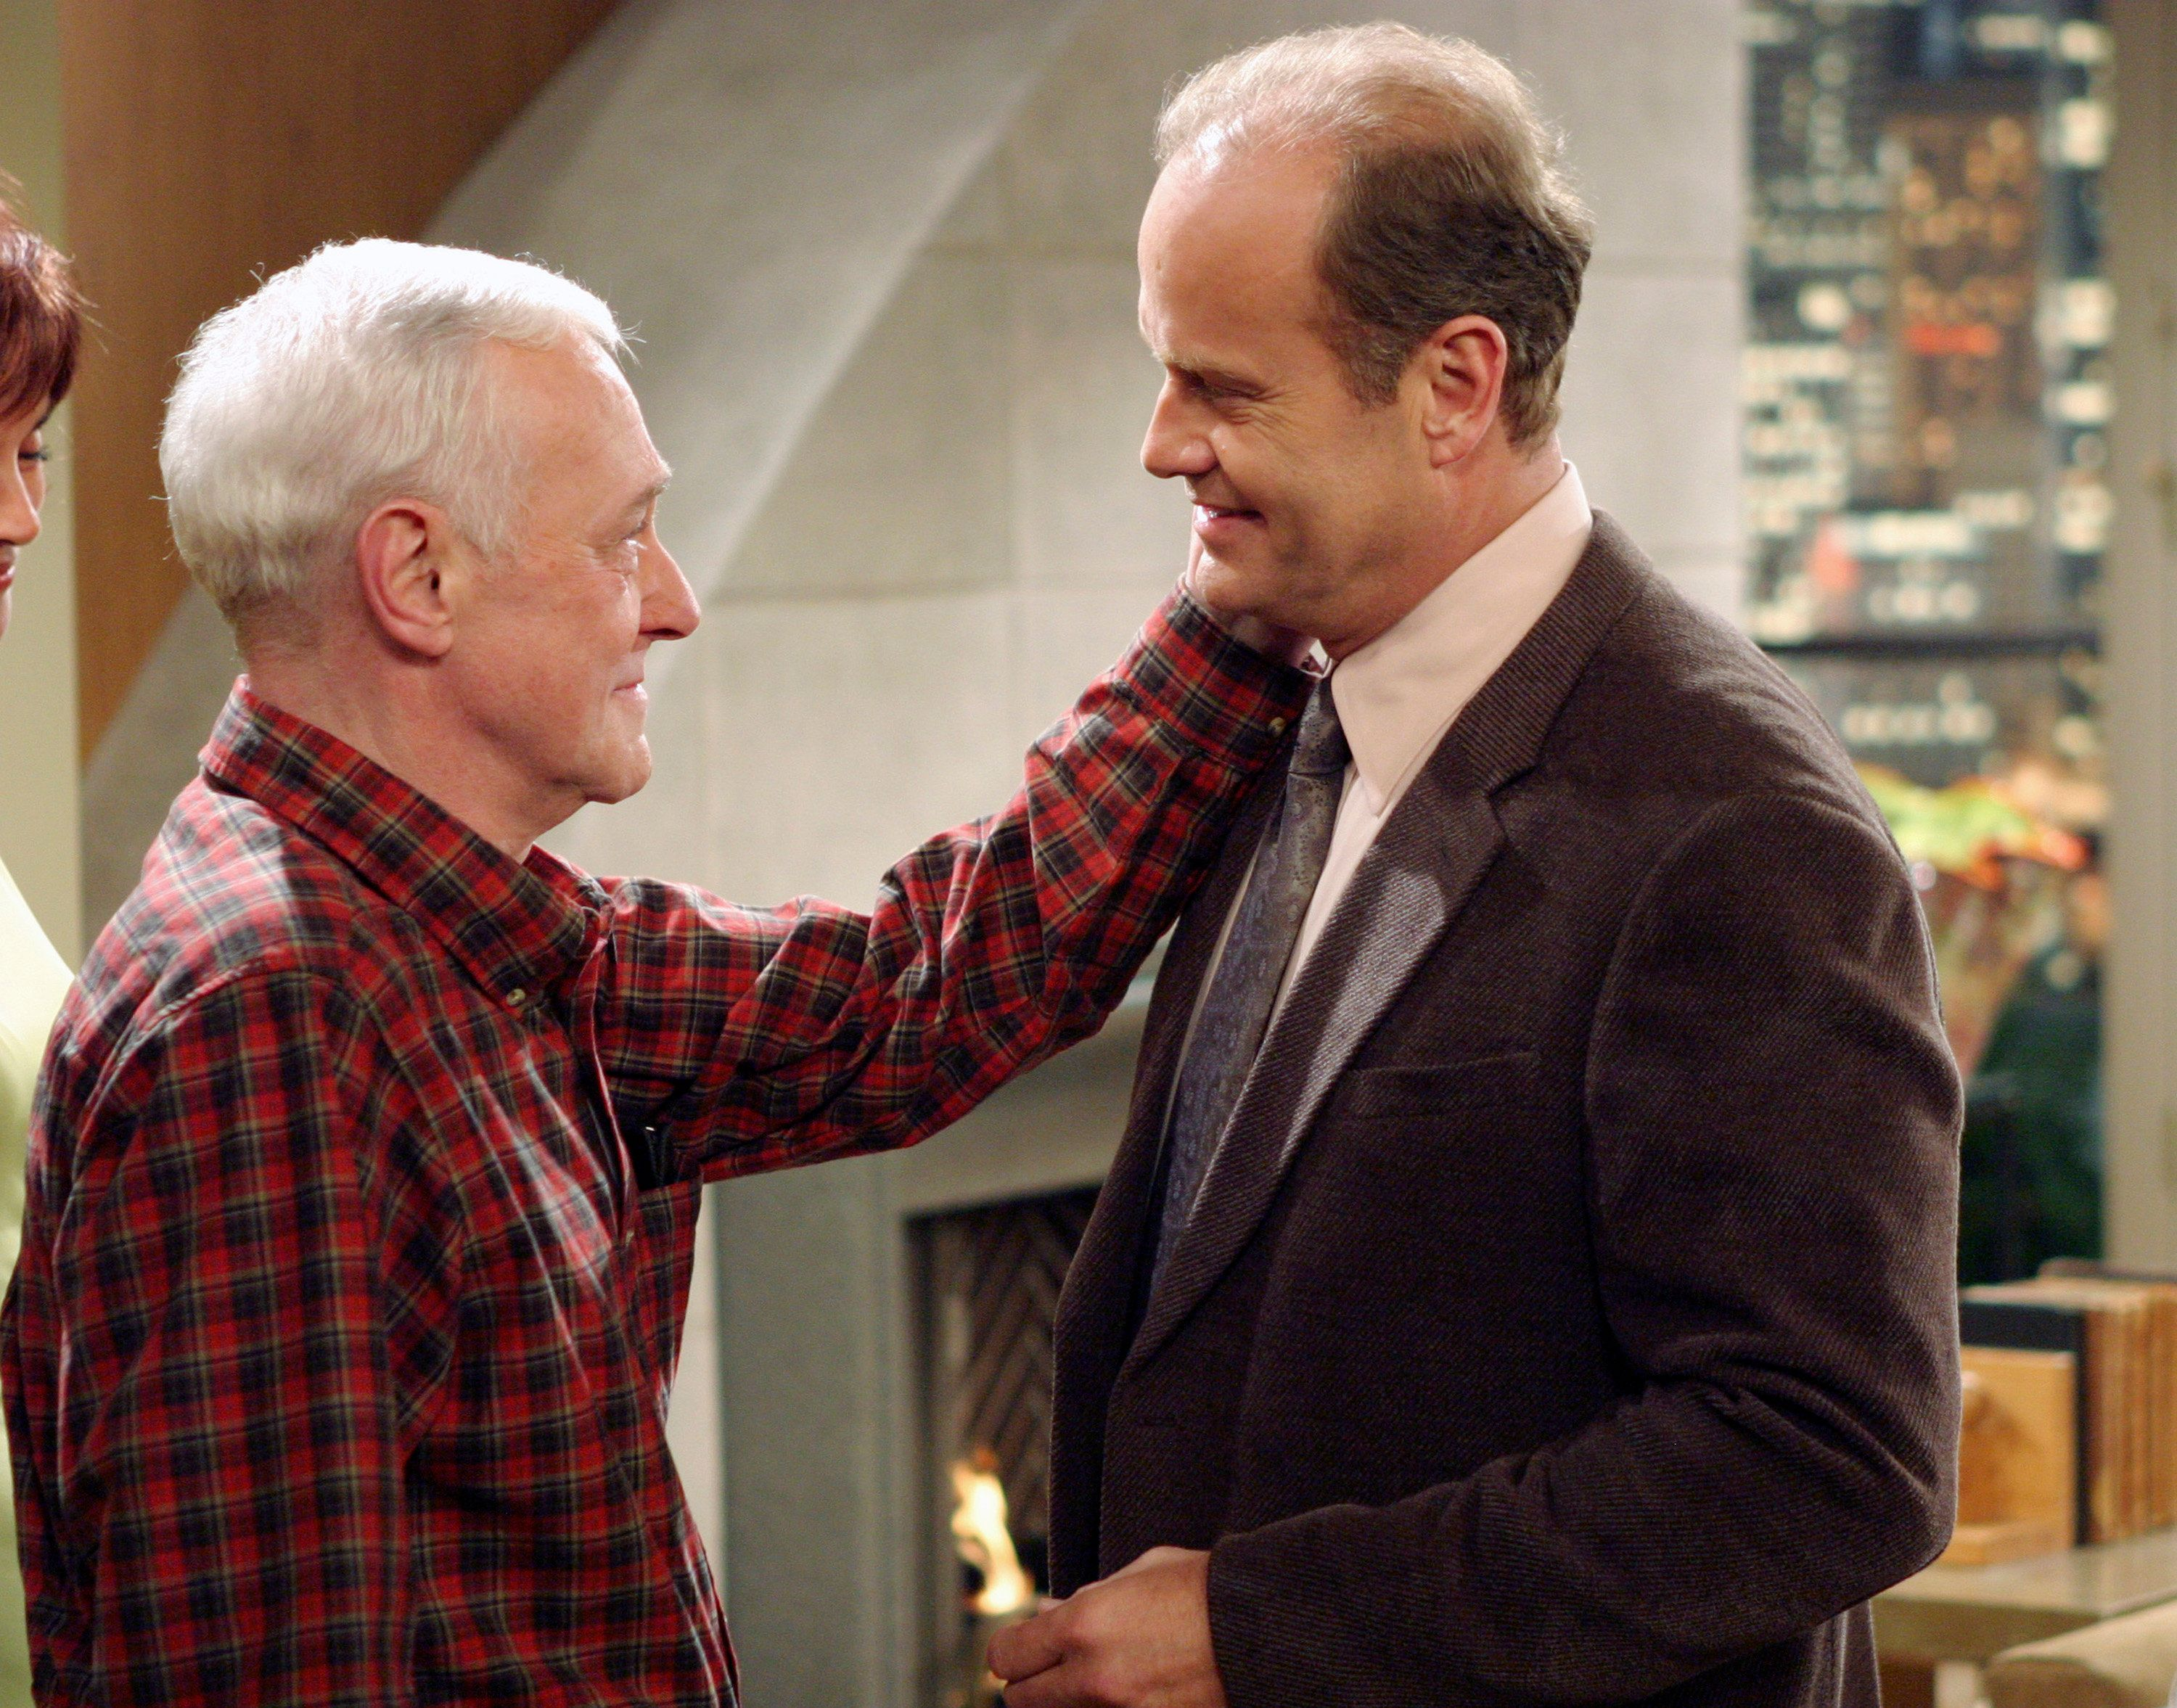 'Frasier' Star John Mahoney Cause of Death Brain Disease, Lung Cancer